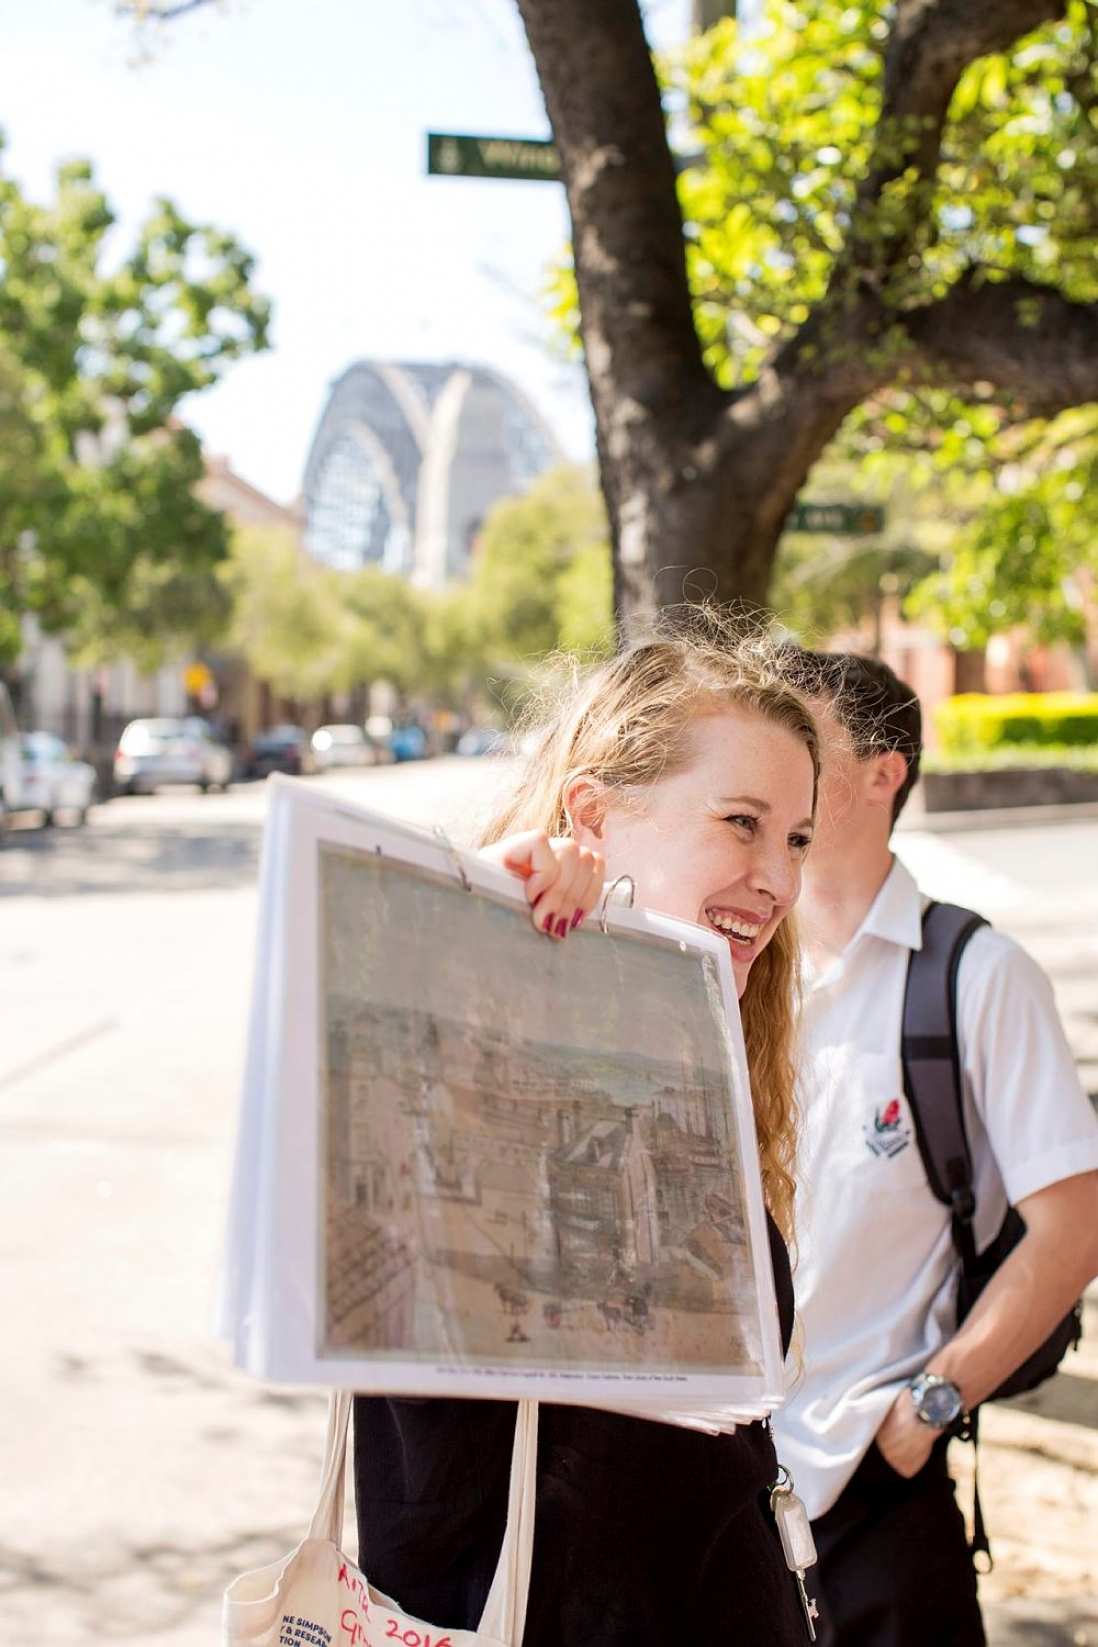 During the program student walk through The Rocks, using artworks, maps and newspaper extracts to understand how the area has changed over time